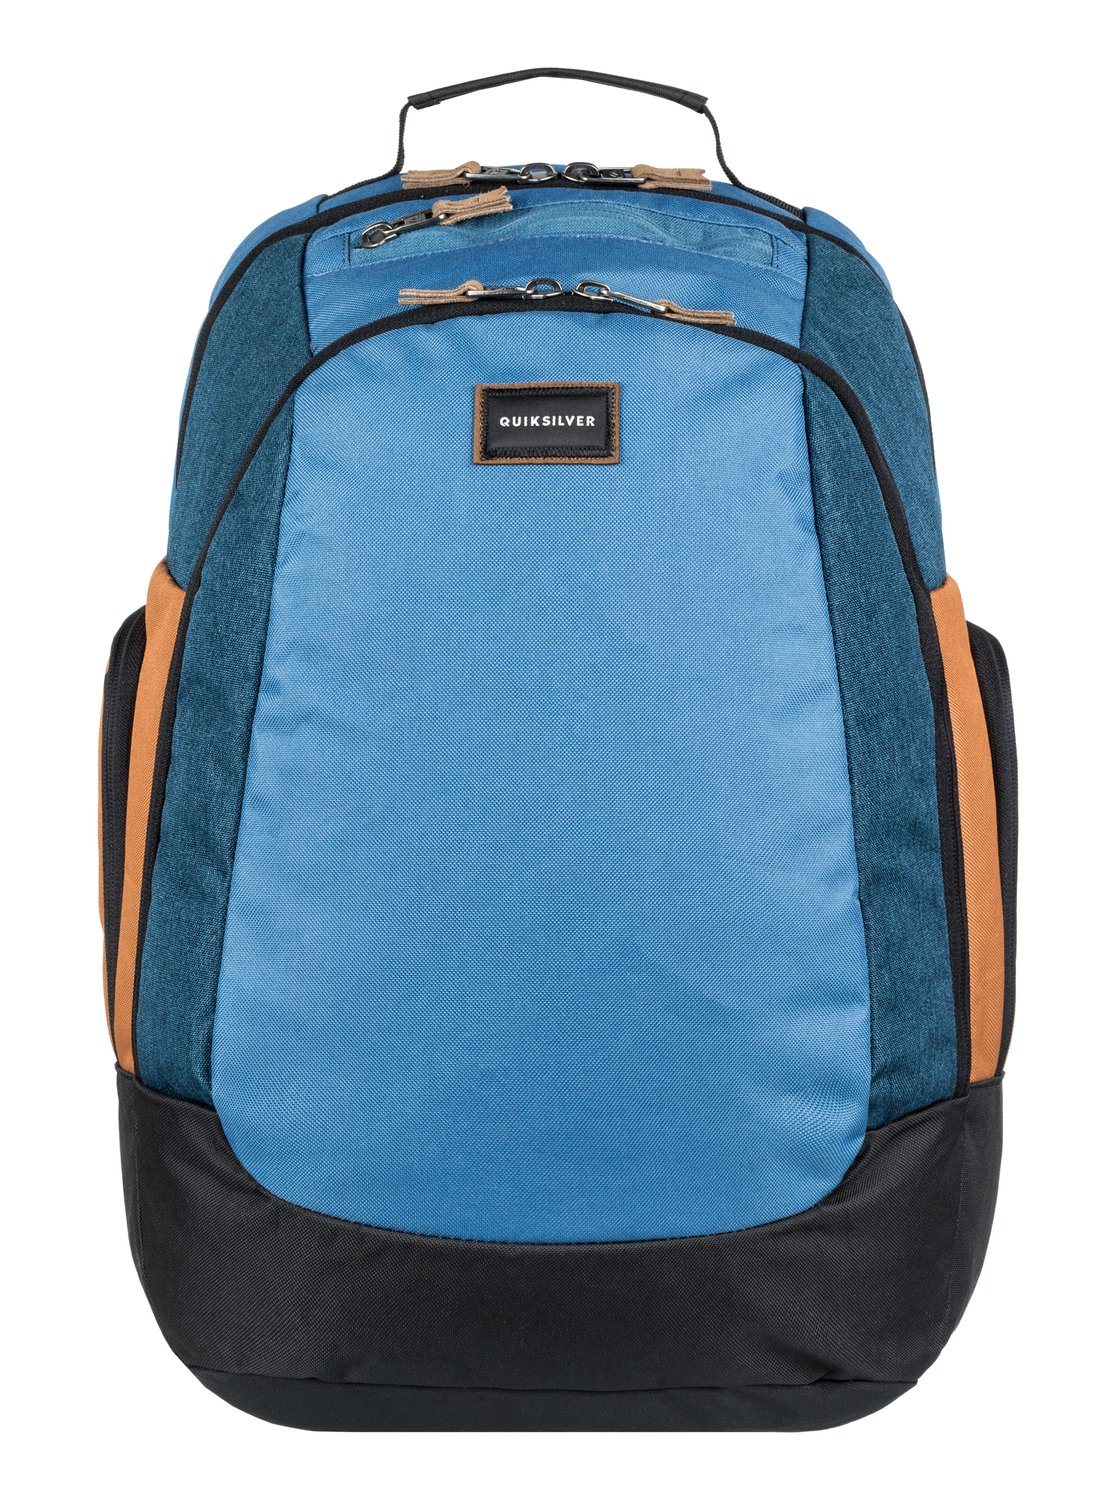 Quiksilver Sac à dos 1969 Special Plus bcmkD